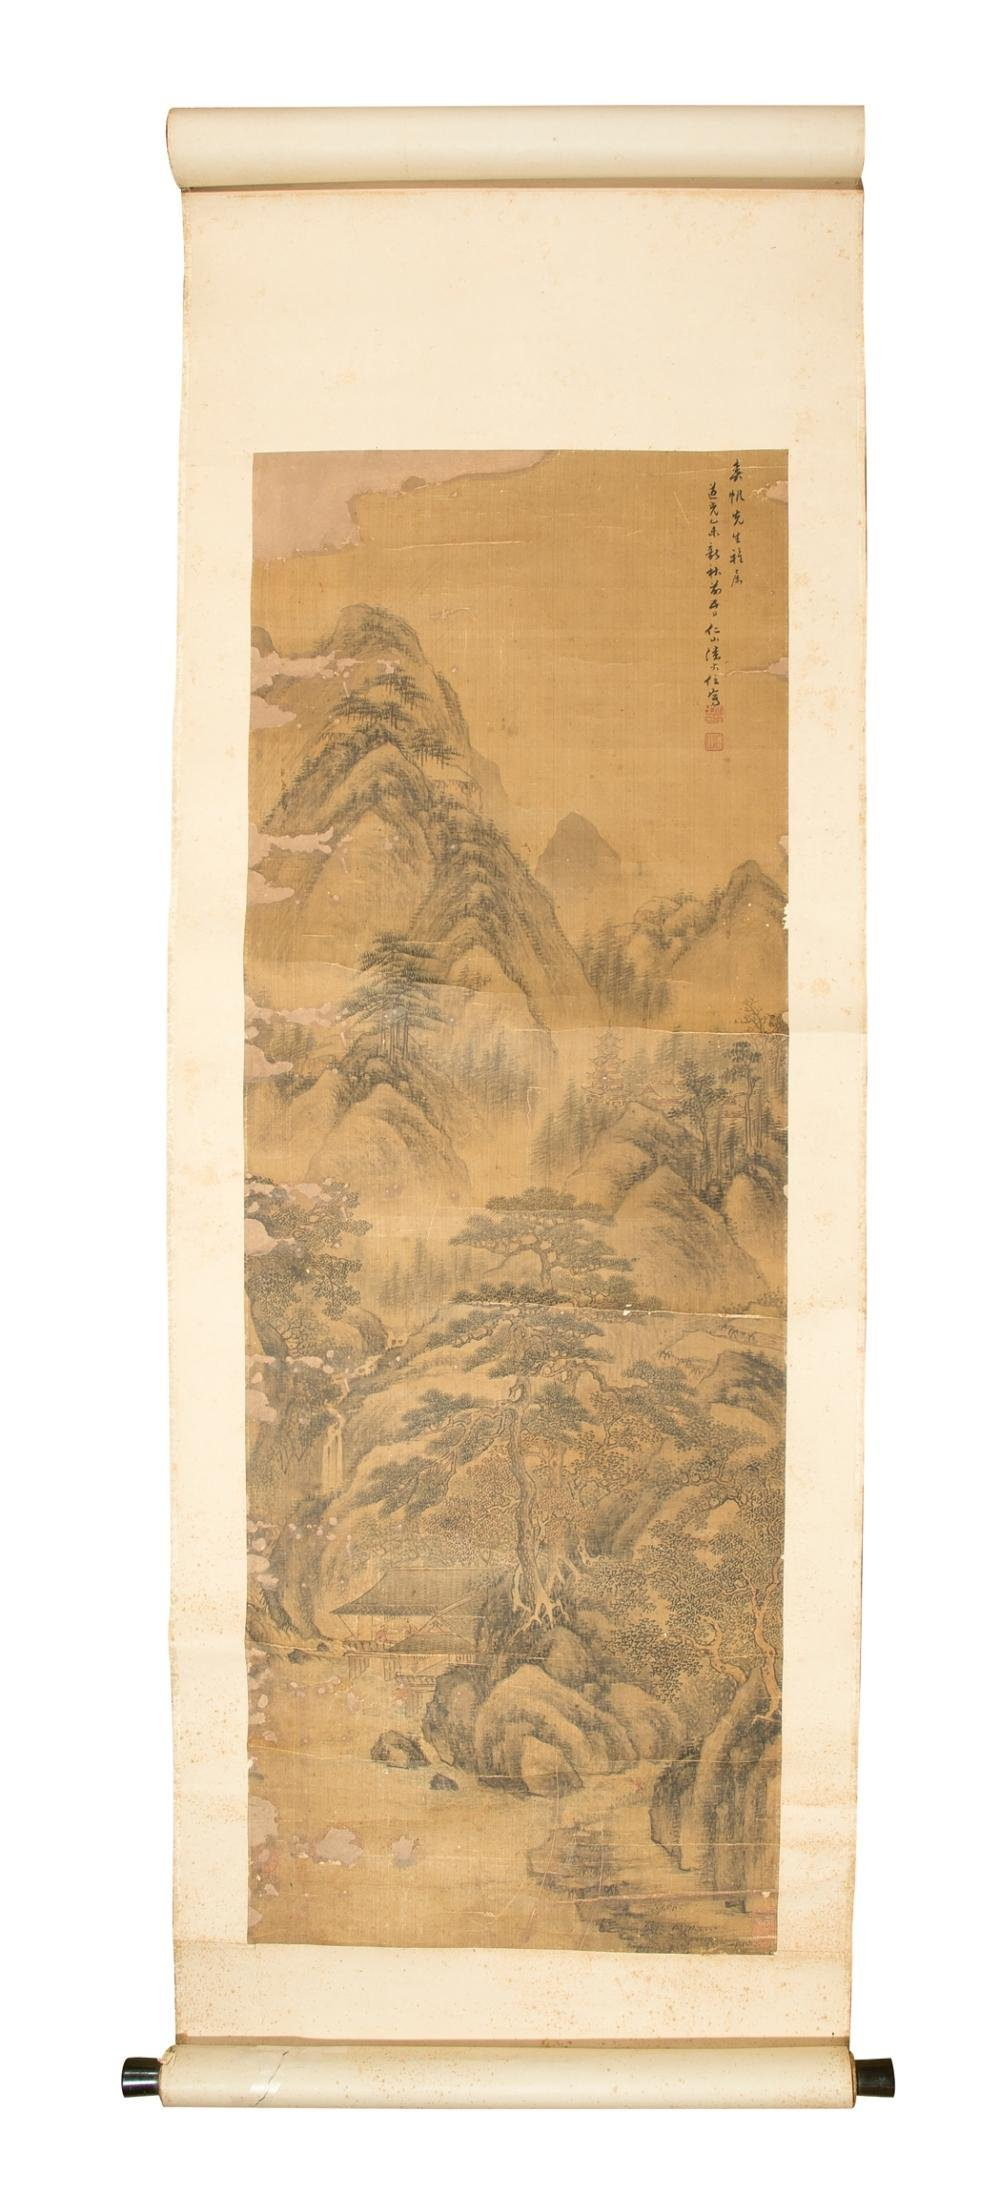 A Chinese hanging scroll from the Qing period